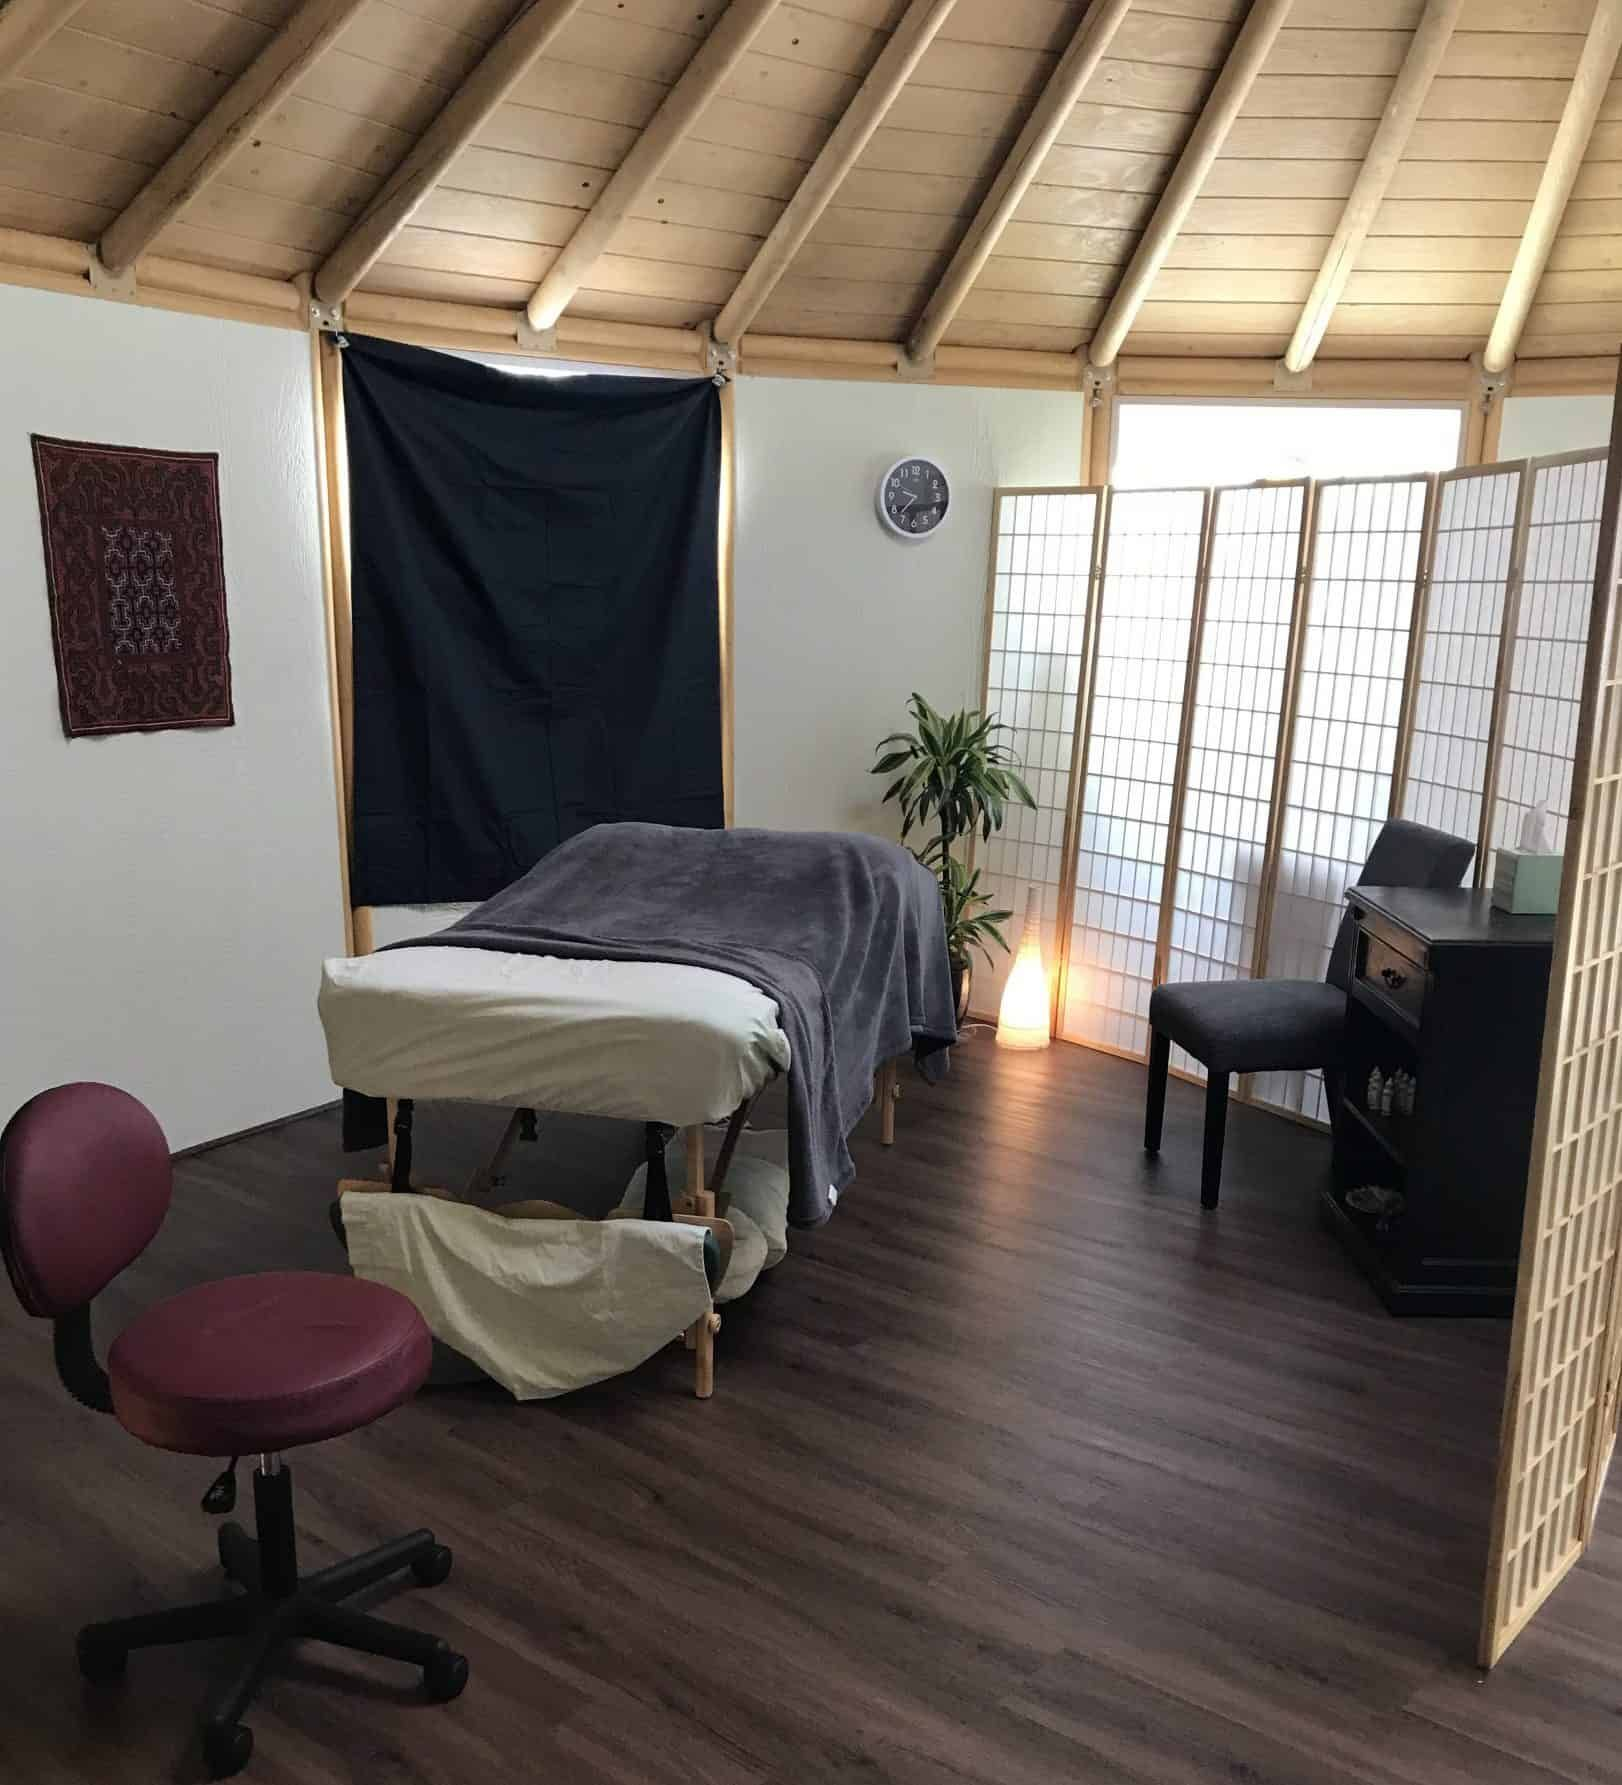 Yurt Cabins For Commercial Use Freedom Yurt Cabins Massage Room Decor Cabin Kits For Sale Massage Room